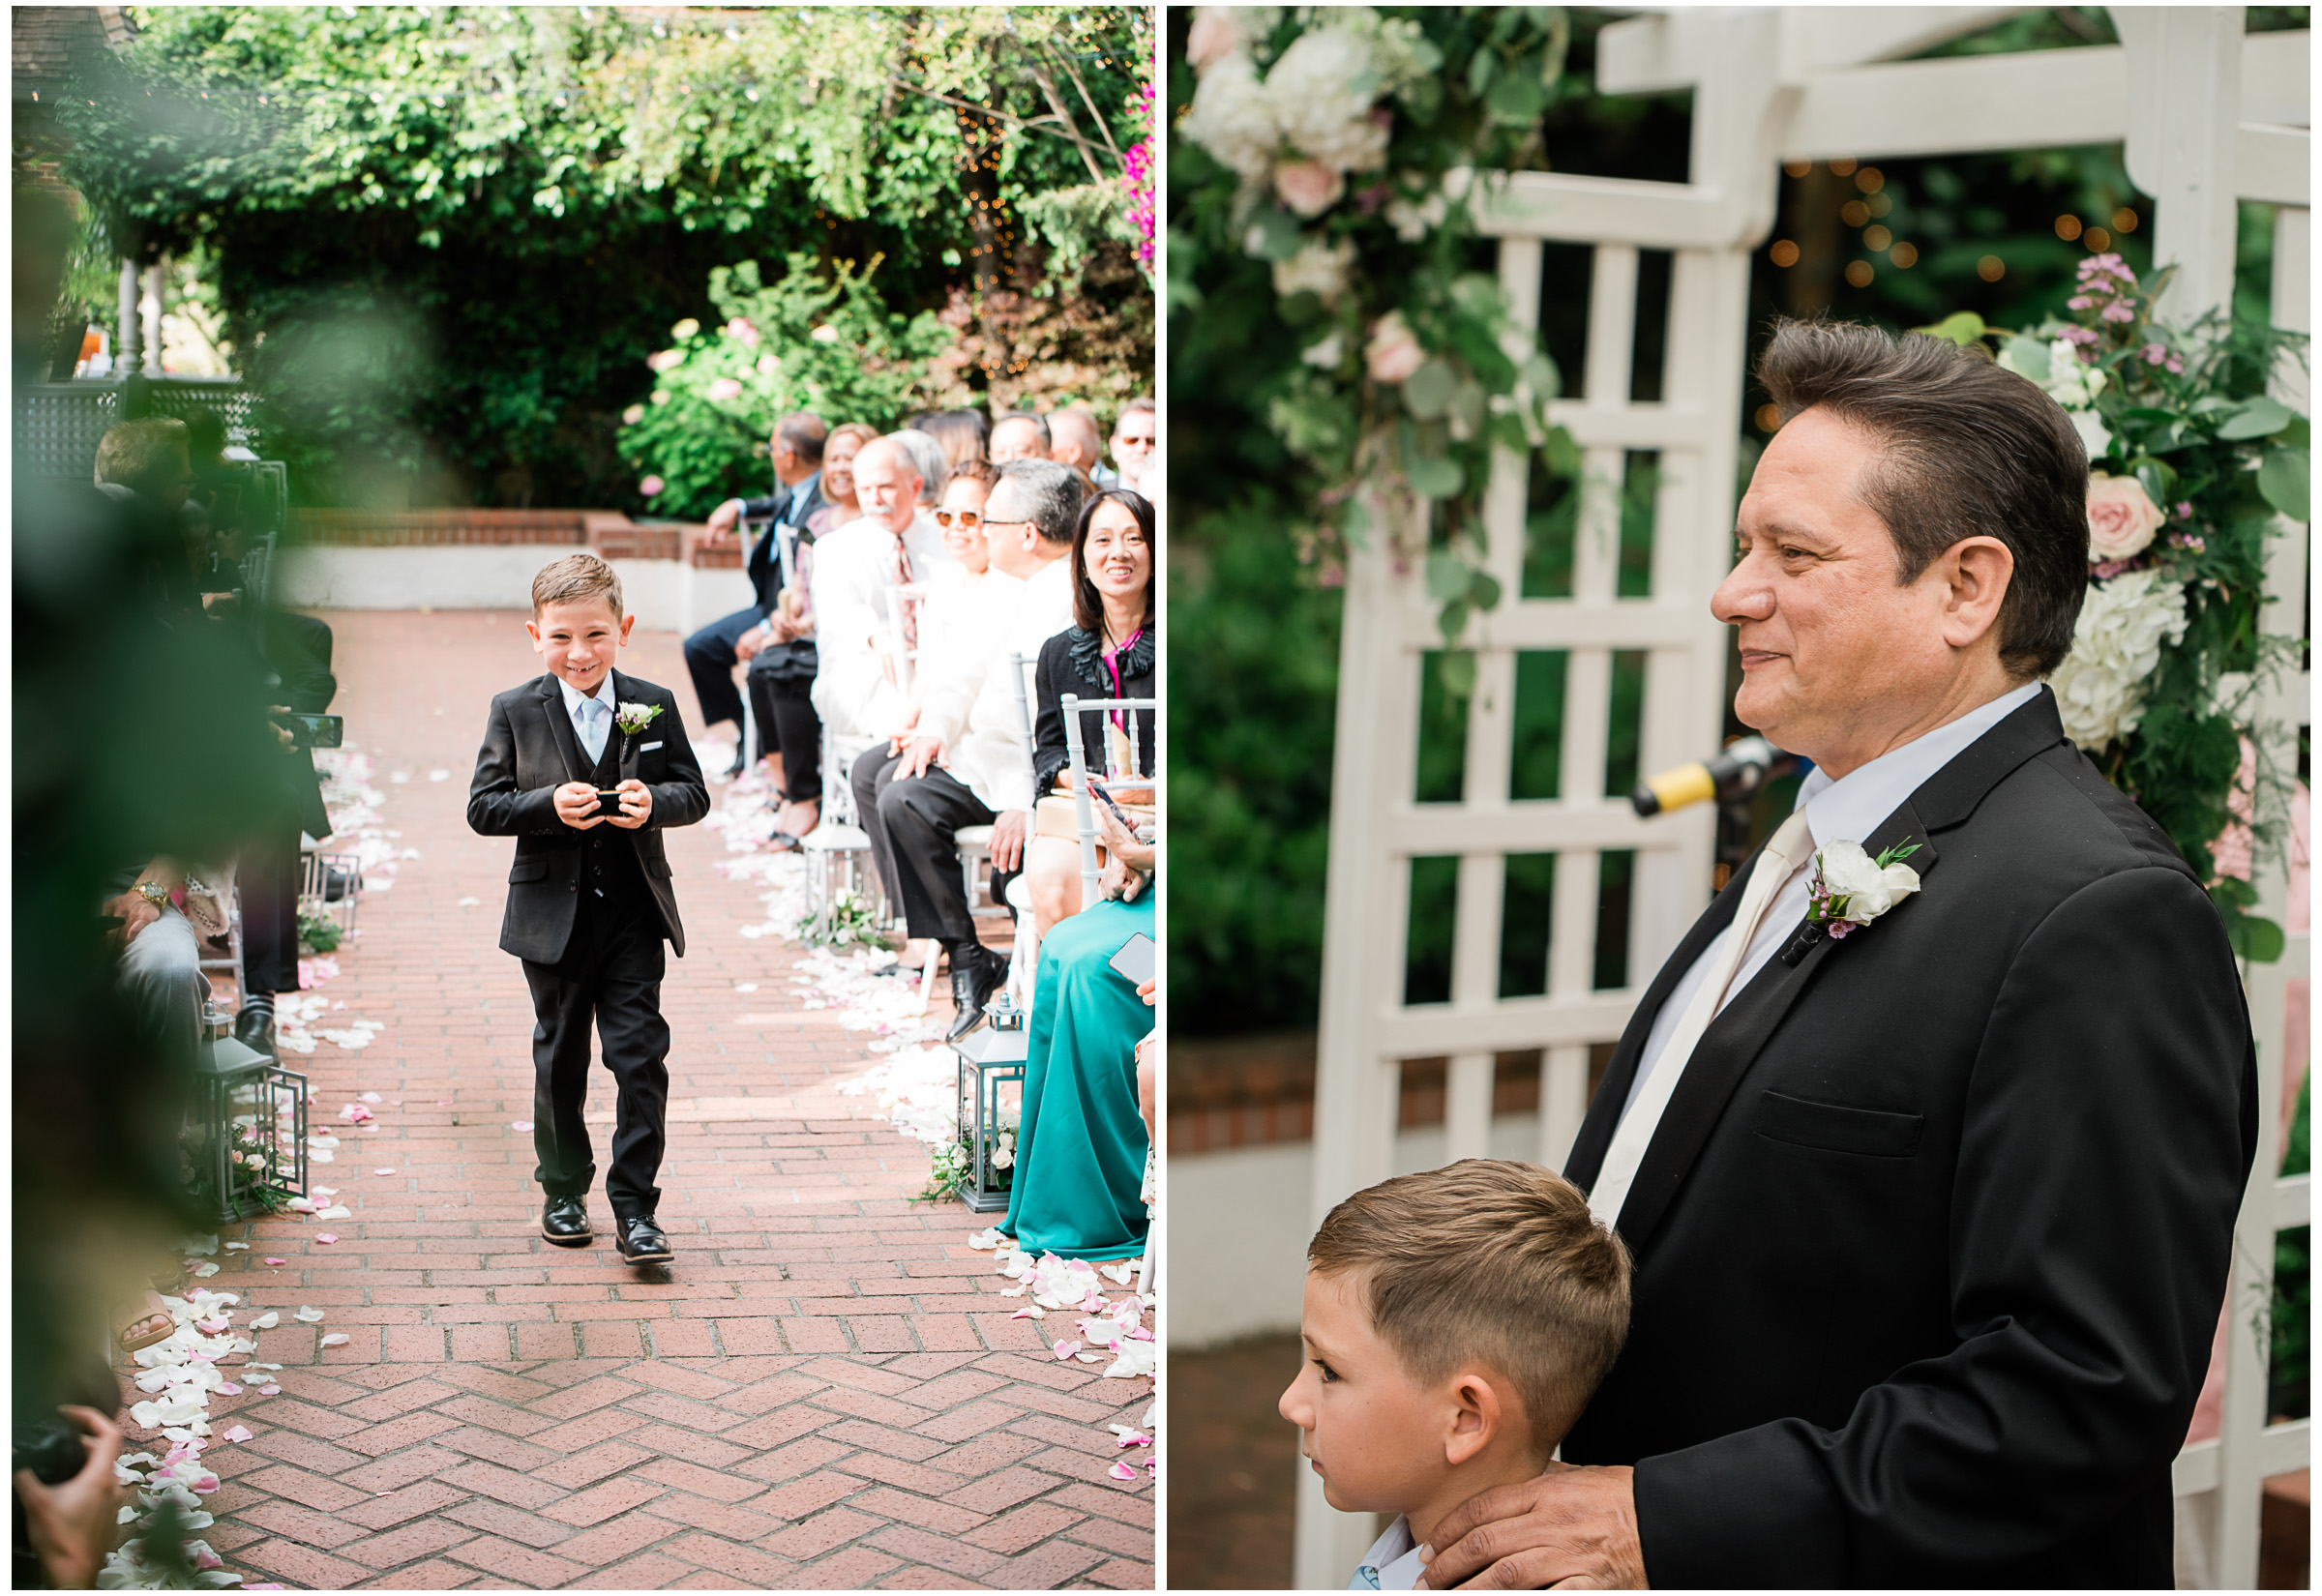 Sacramento Wedding - Sacramento Photographer - Vizcaya - Justin Wilcox Photography - 10.jpg